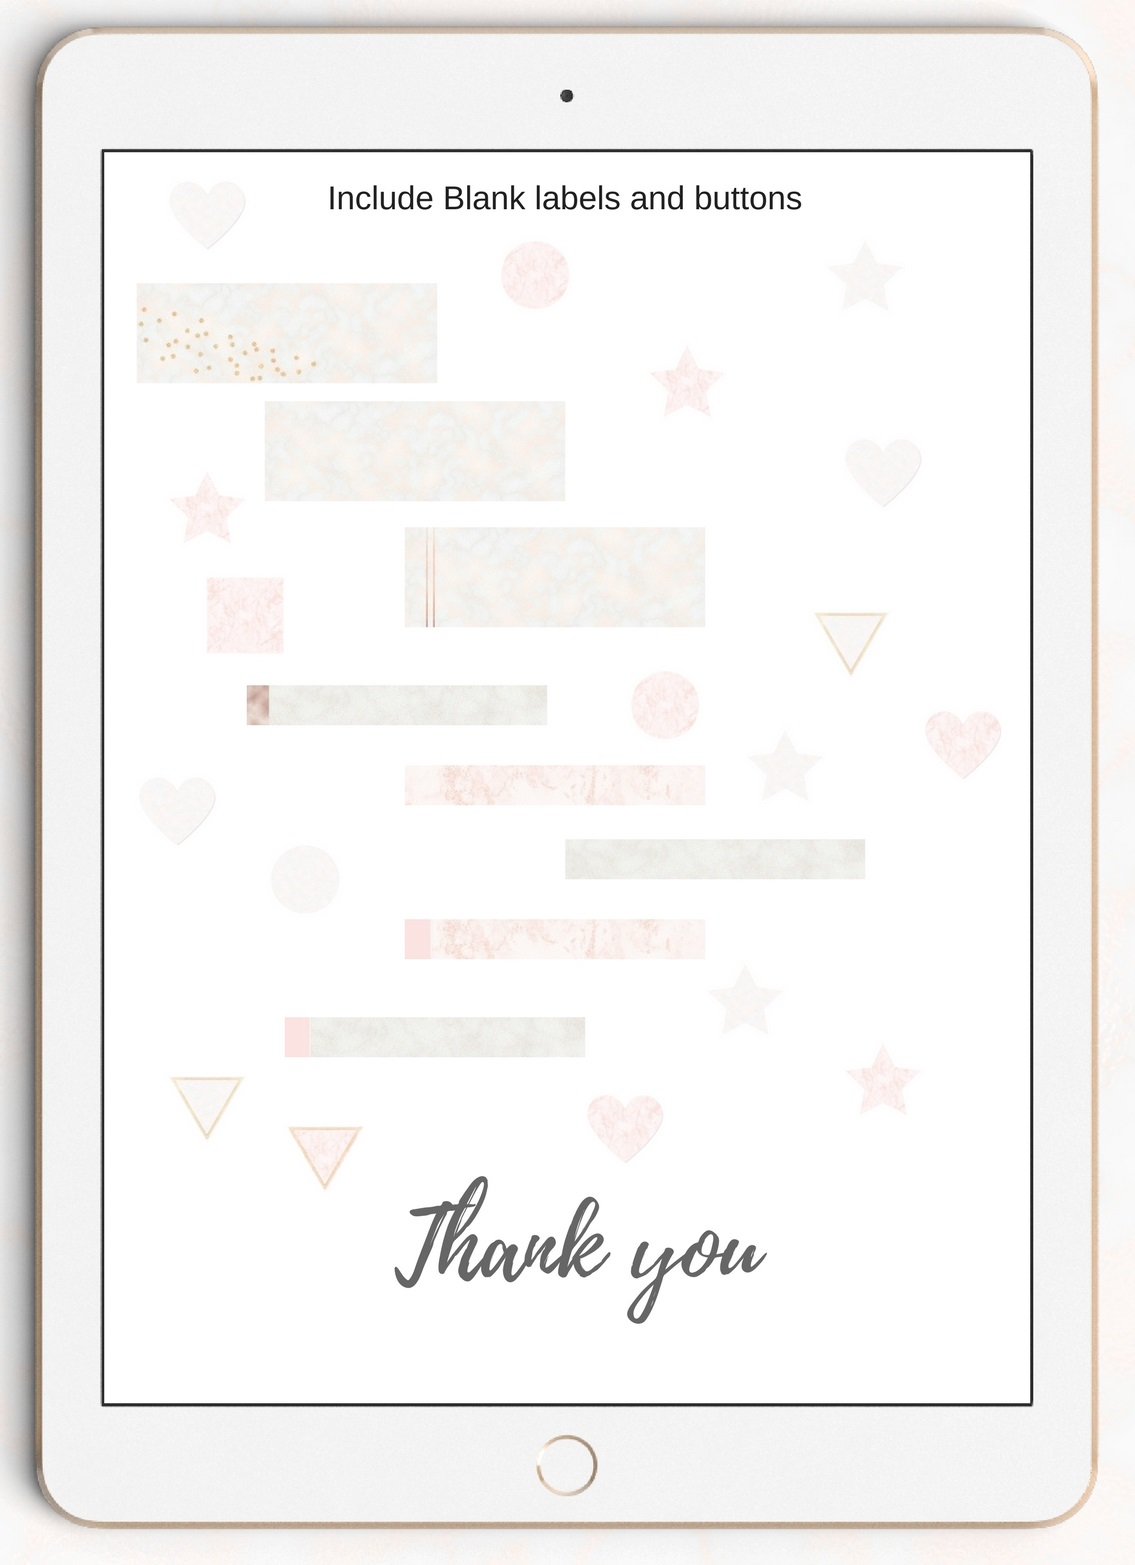 The Creative Blog Kit Graphic Web Elements By Creative Stash - Image 7